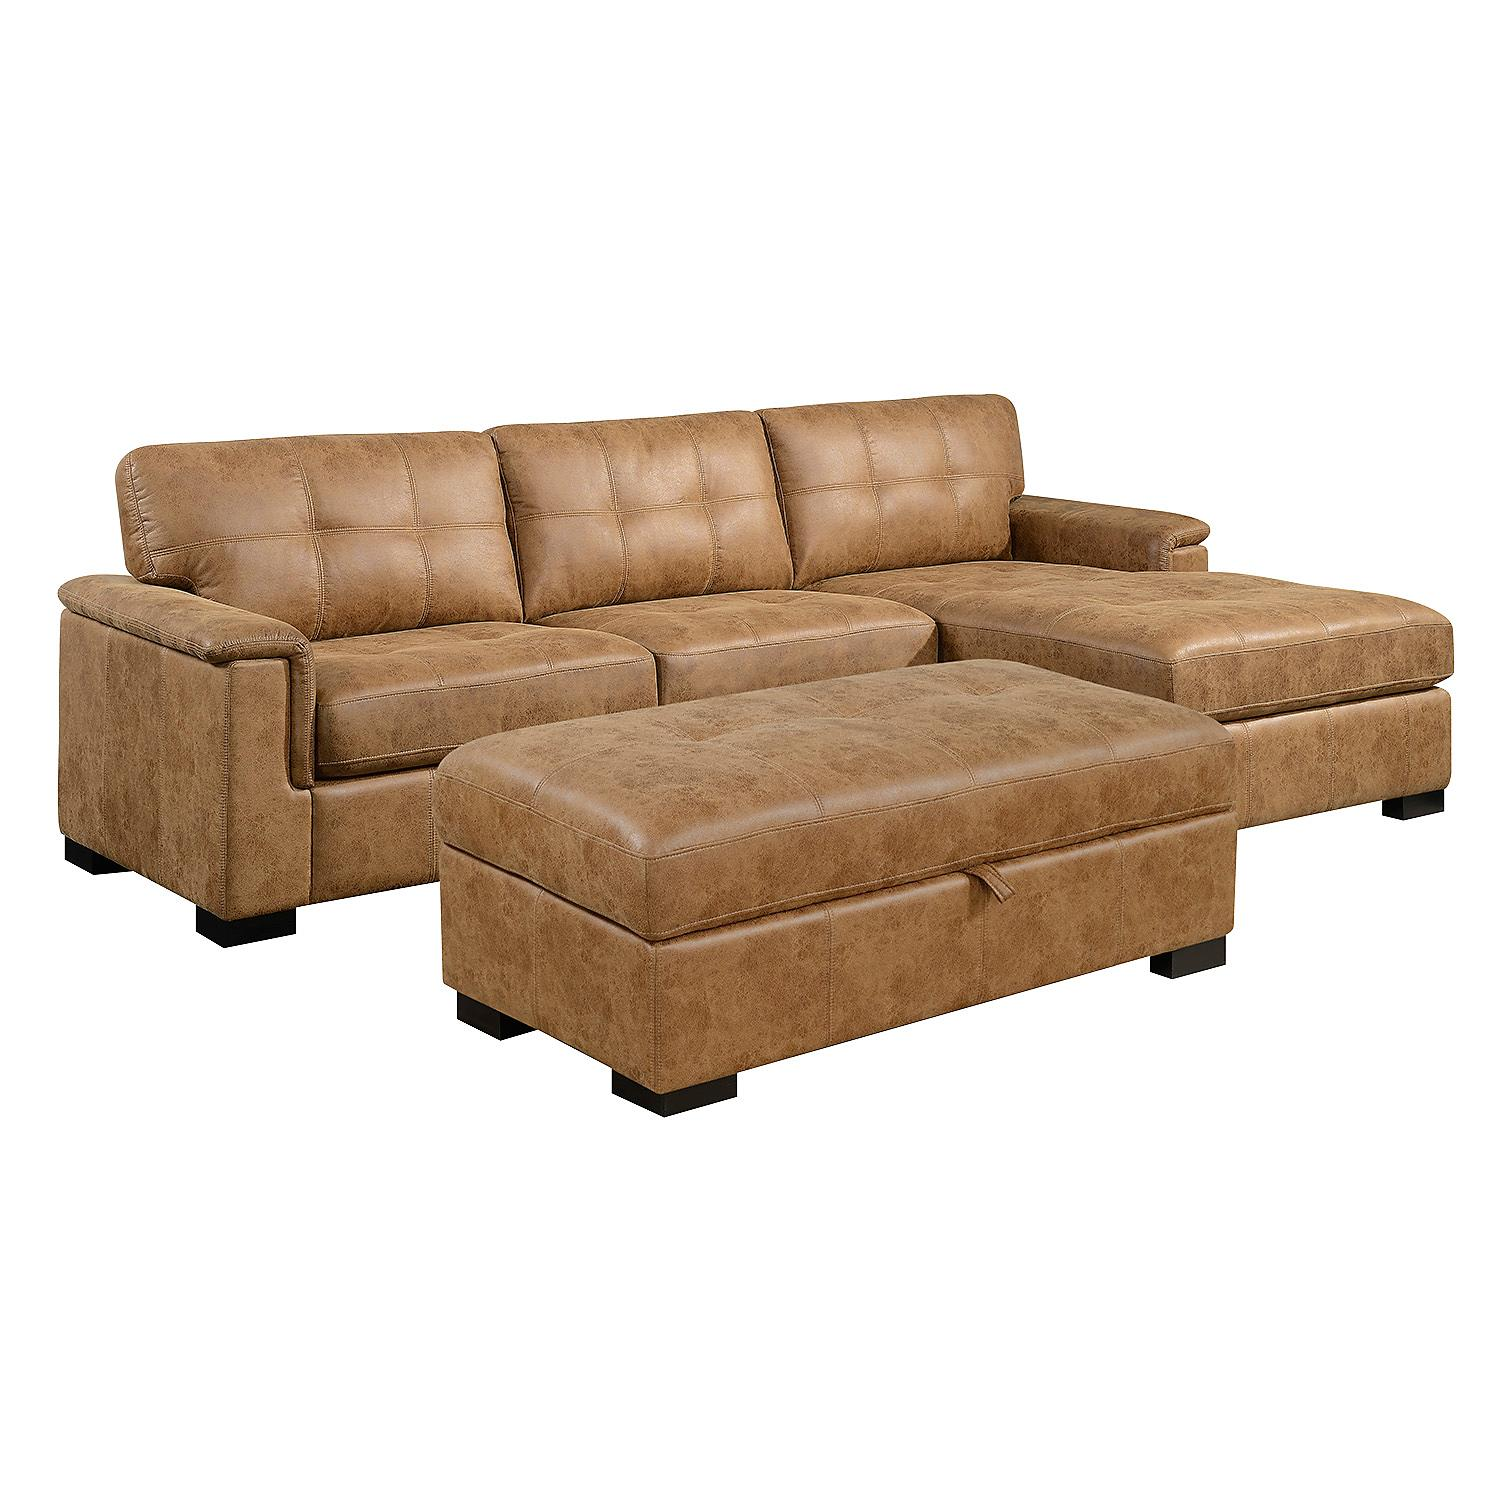 6) Sectional choice 2